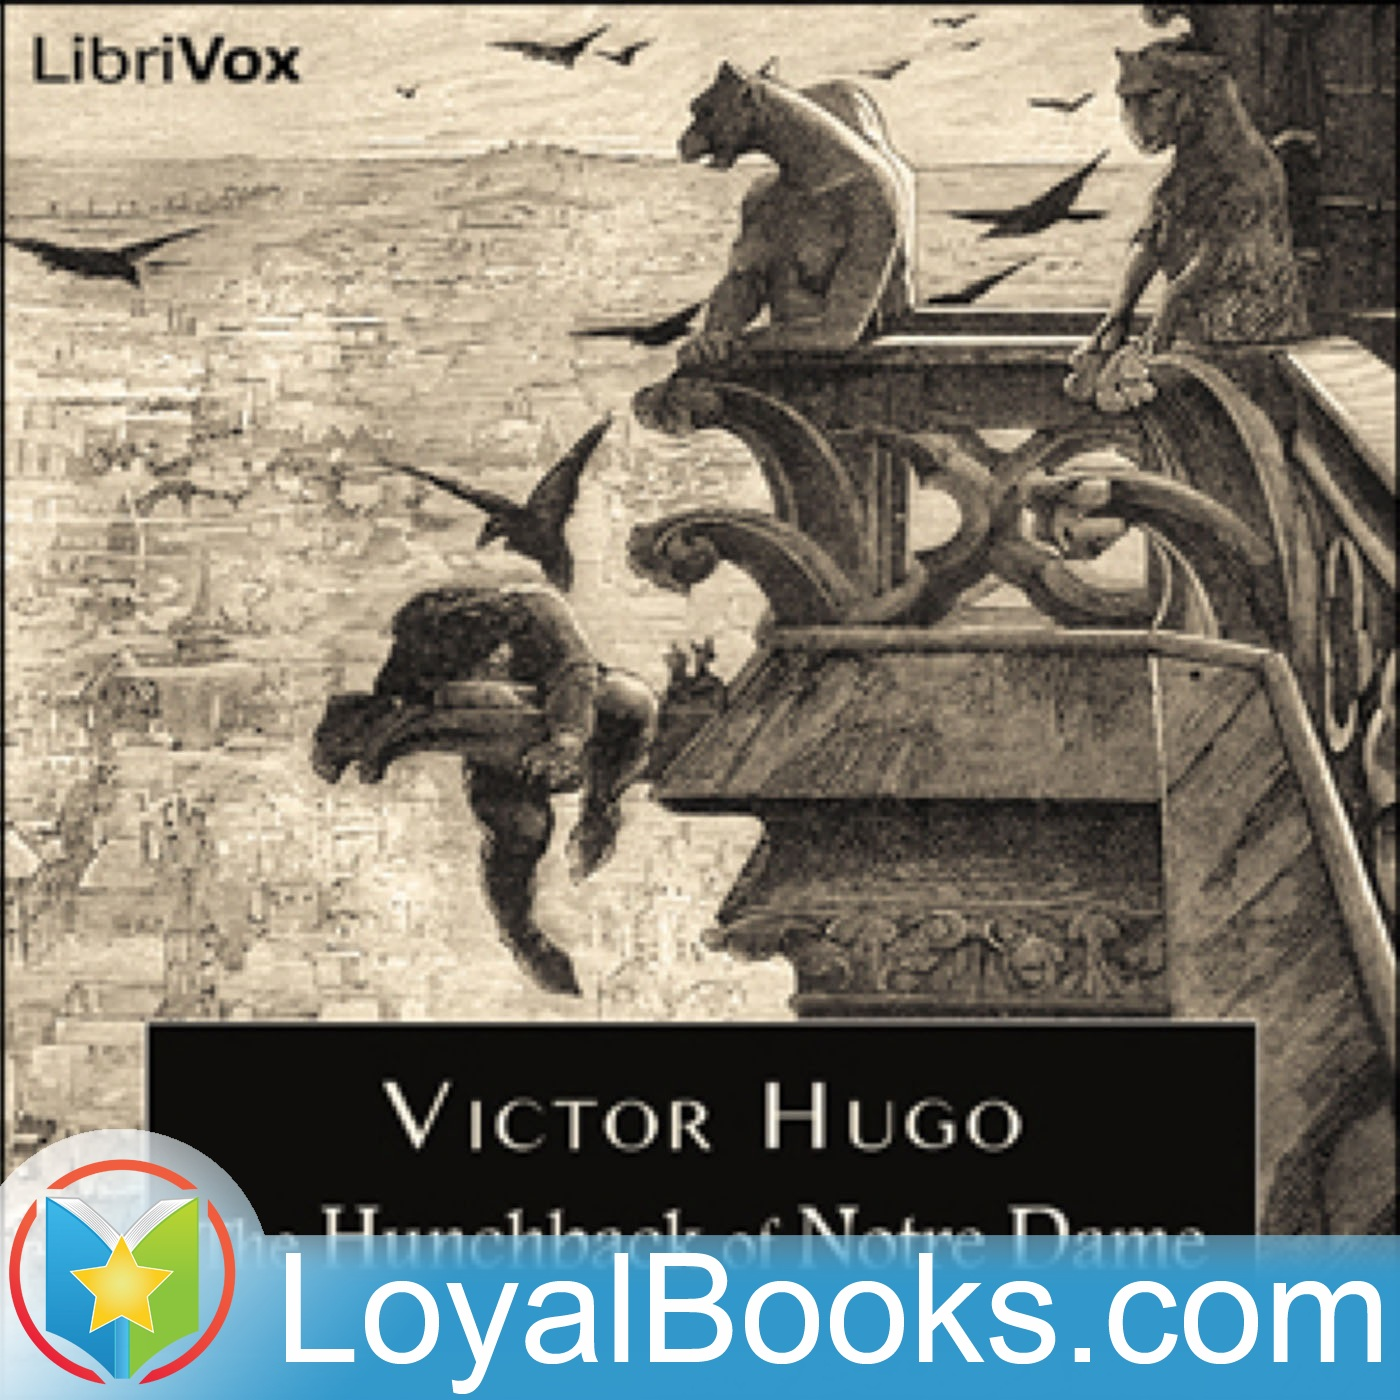 <![CDATA[The Hunchback of Notre Dame by Victor Hugo]]>